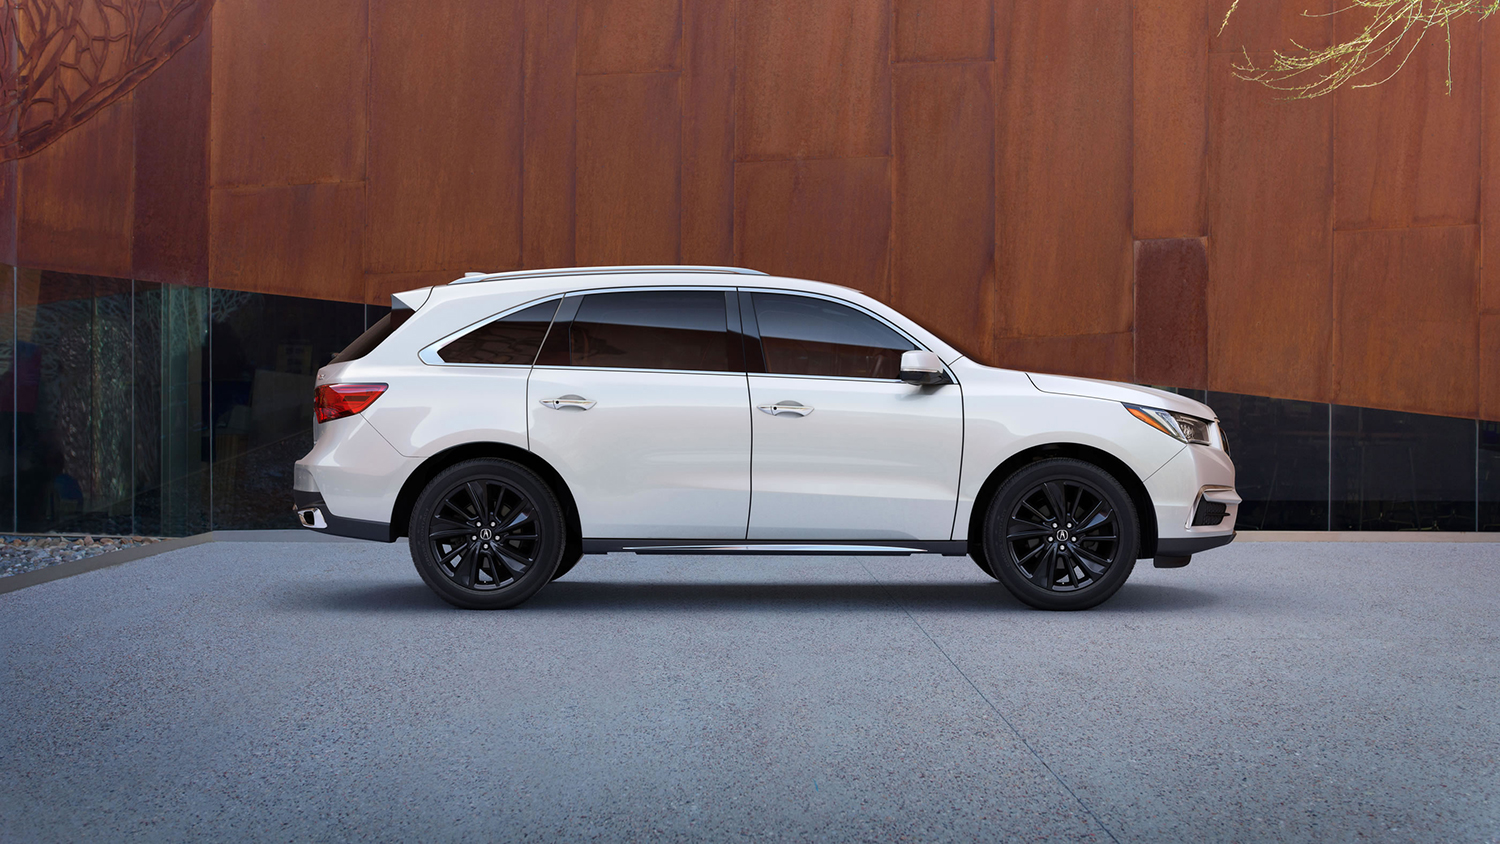 2017 Acura MDX | Houston Acura Dealers